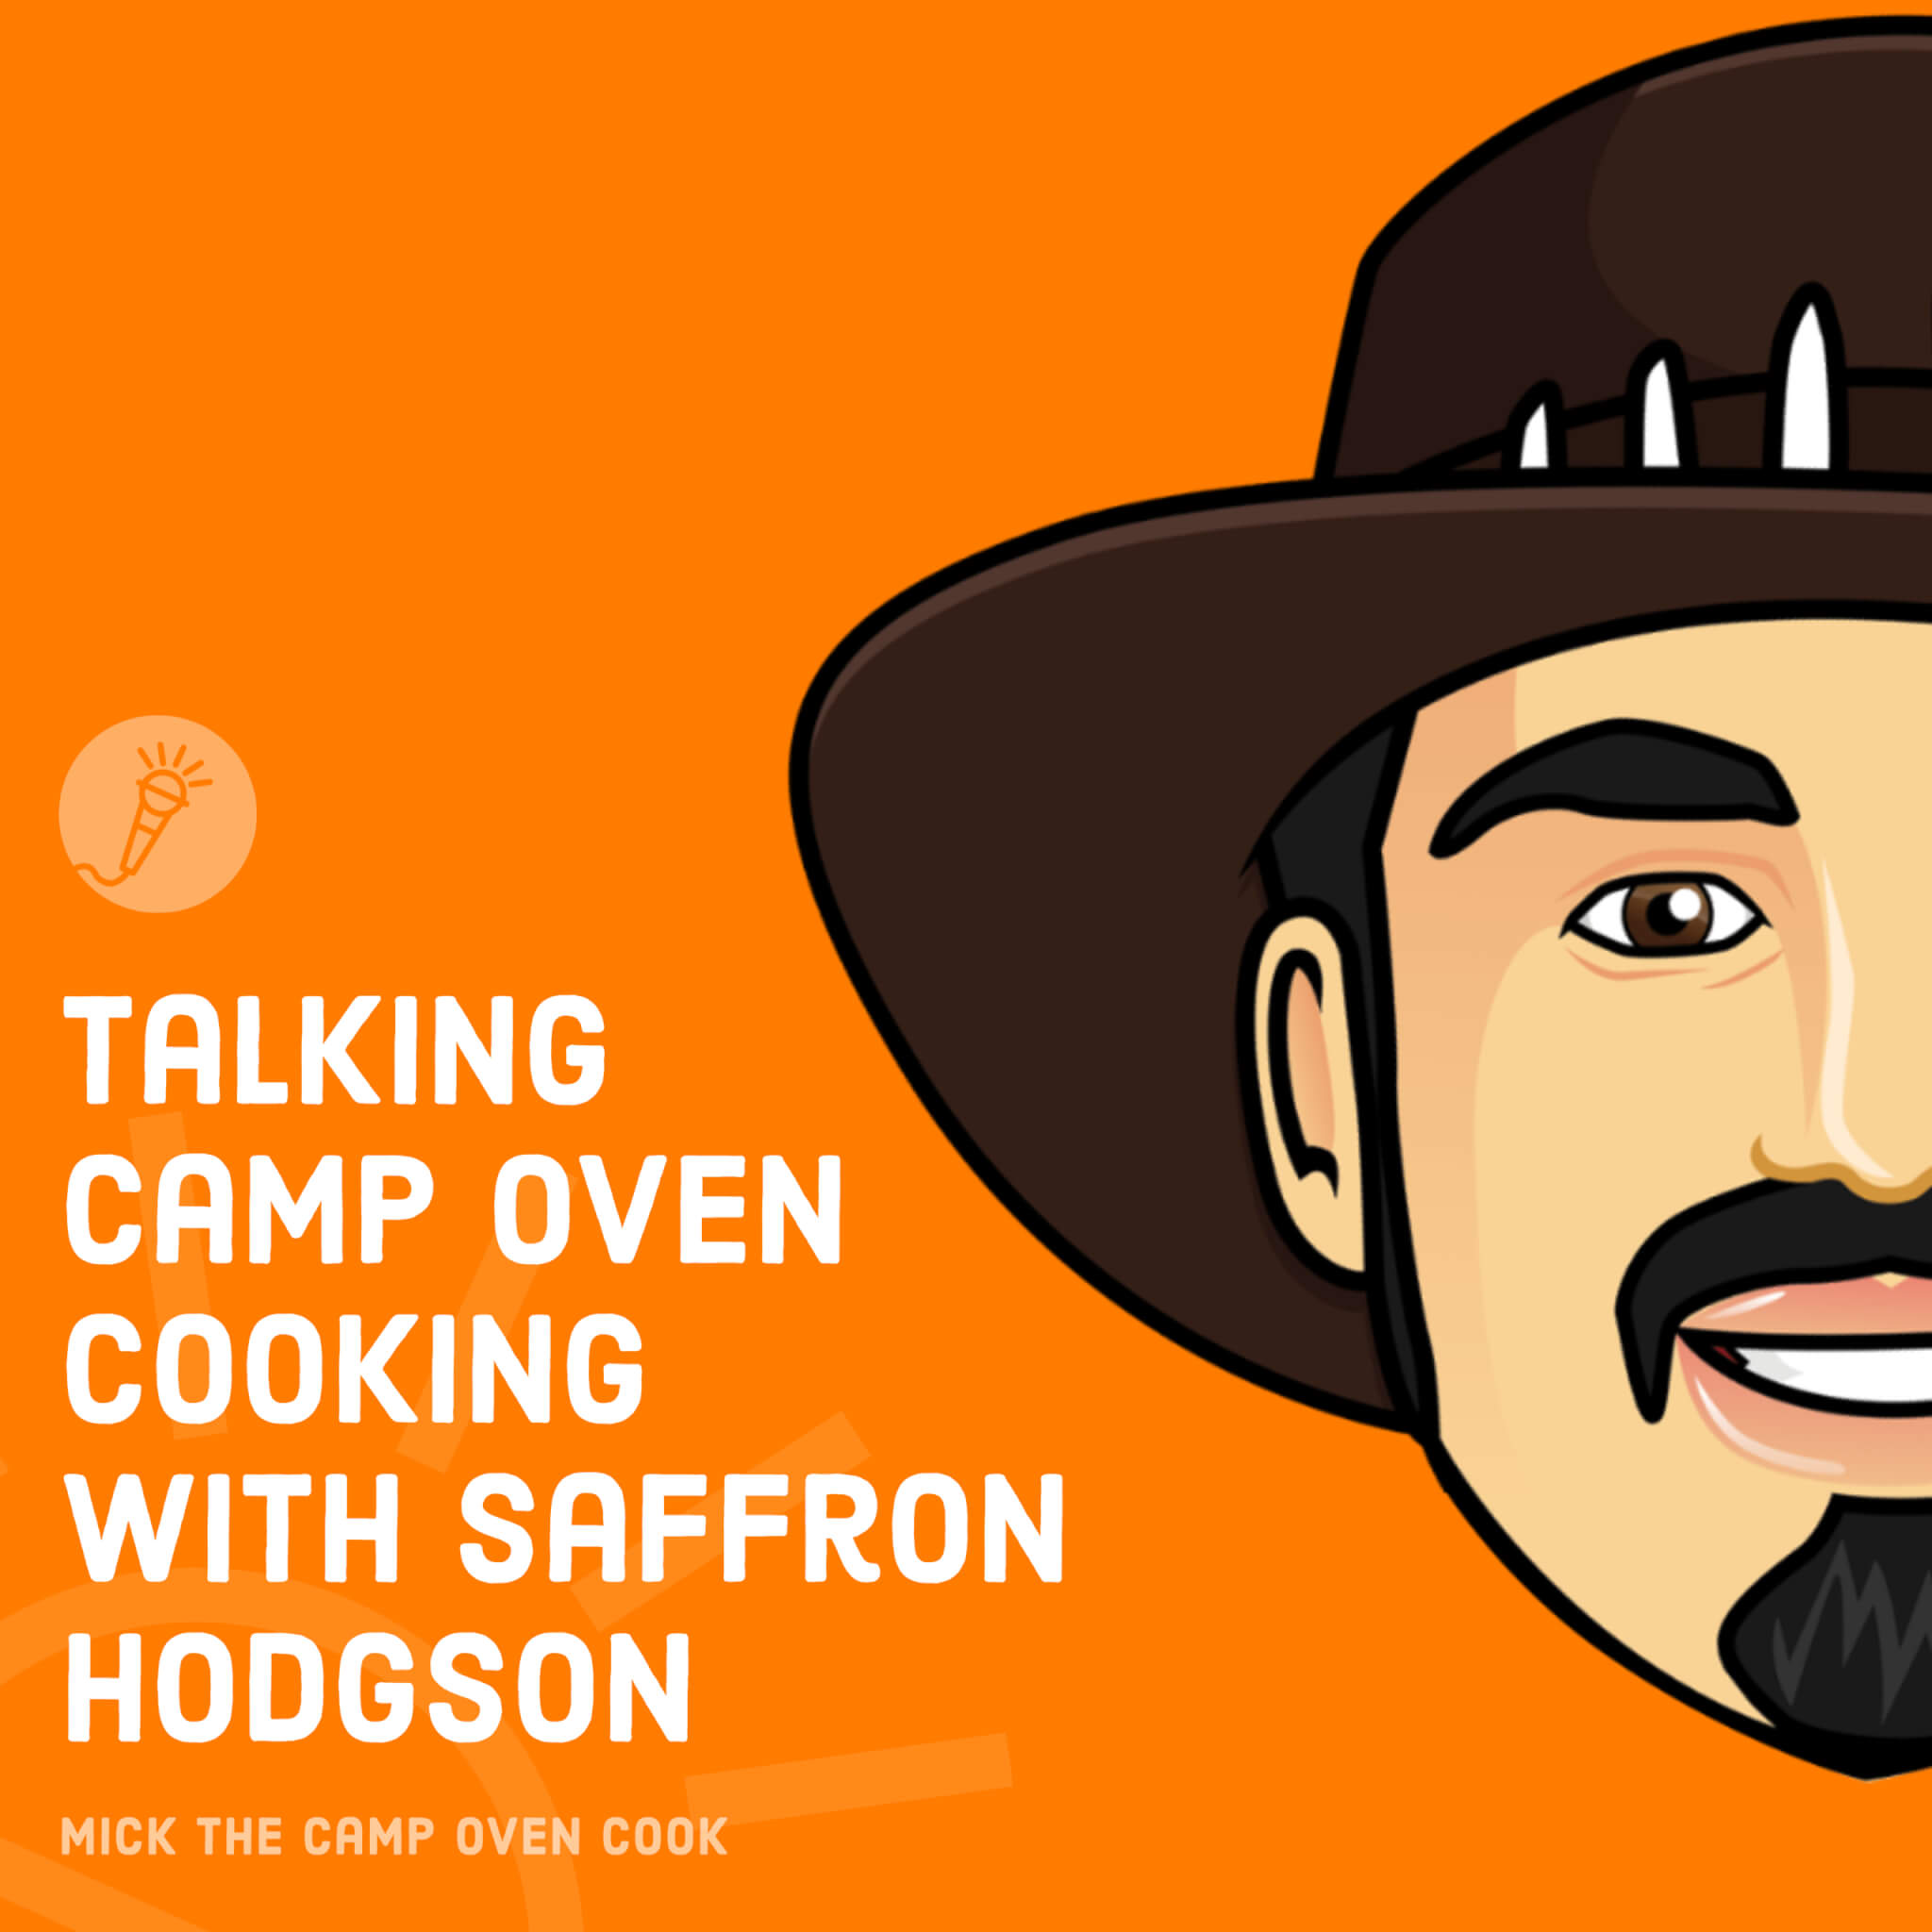 Talking Camp Oven Cooking with Saffron Hodgson